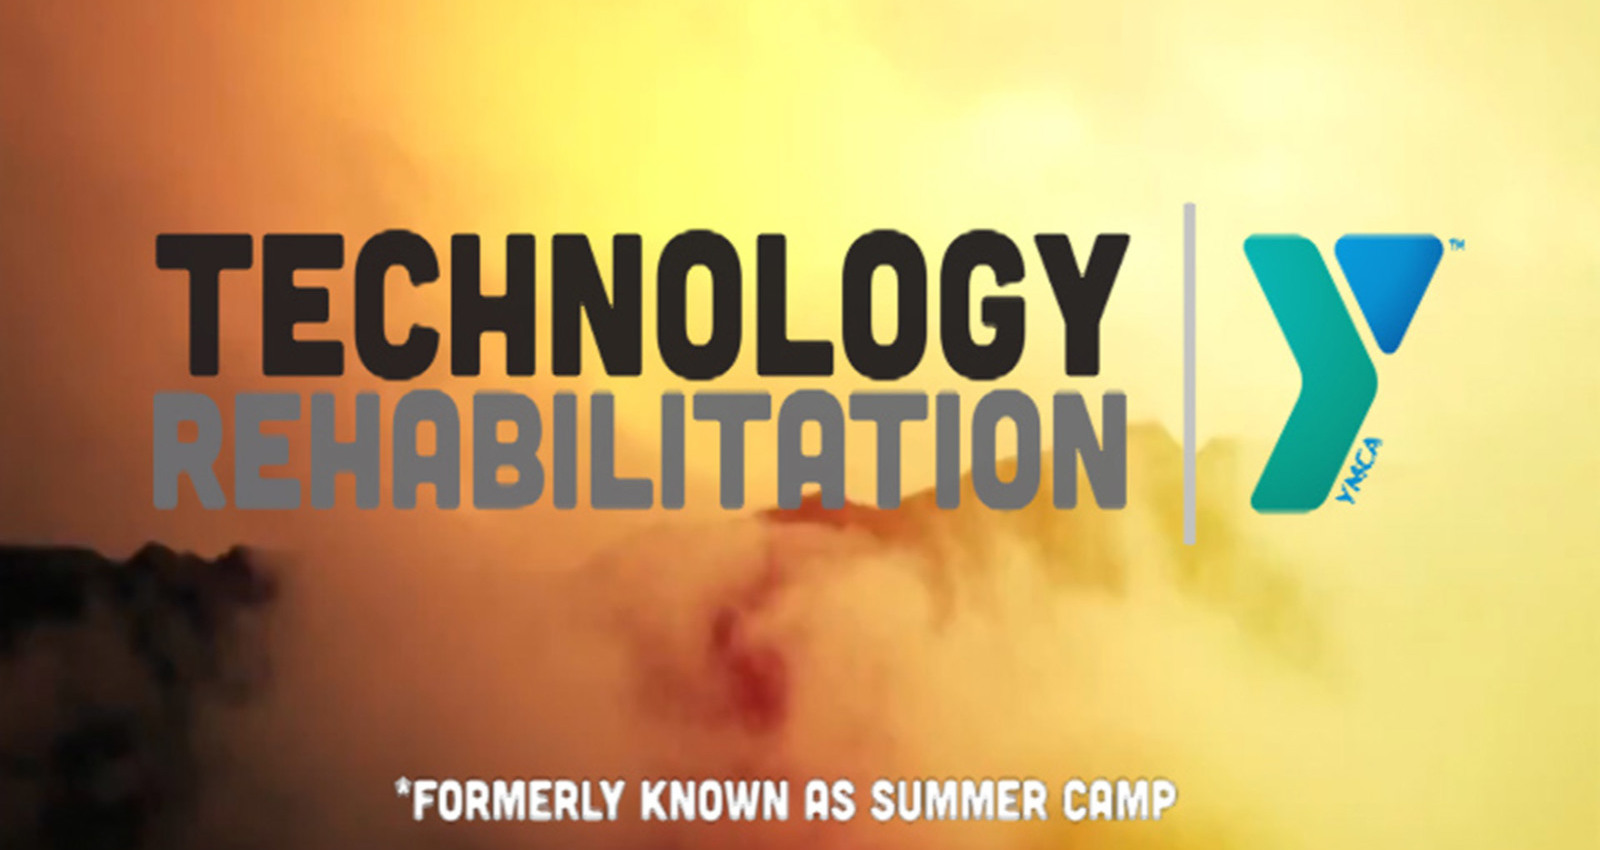 YMCA Technology Rehabilitation (*formerly known as summer camp)